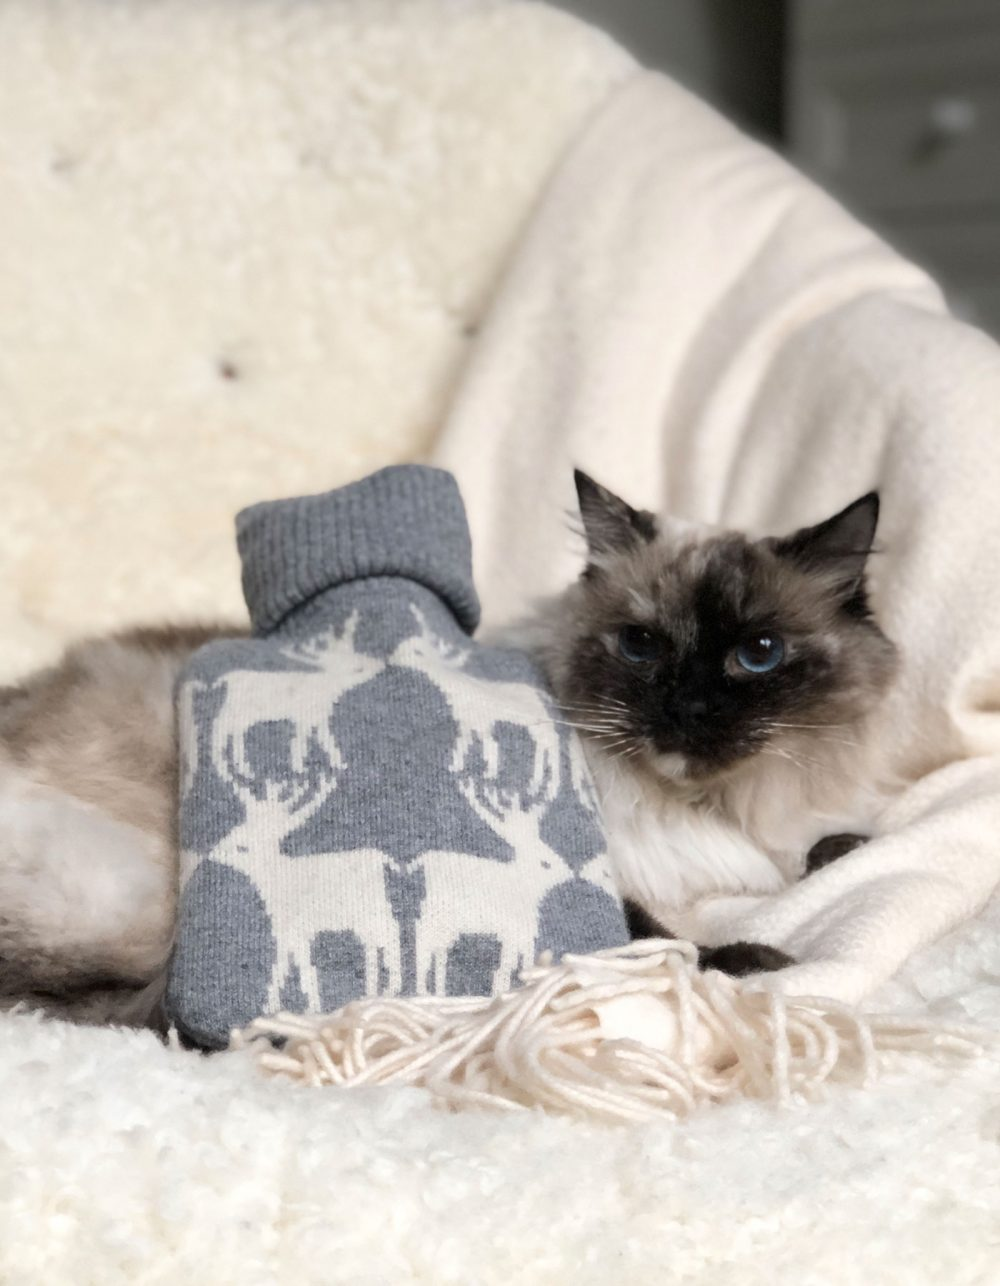 Cat sitting with a cashmere hot water bottle, part of the malin darlin range of designer cashmere gifts.